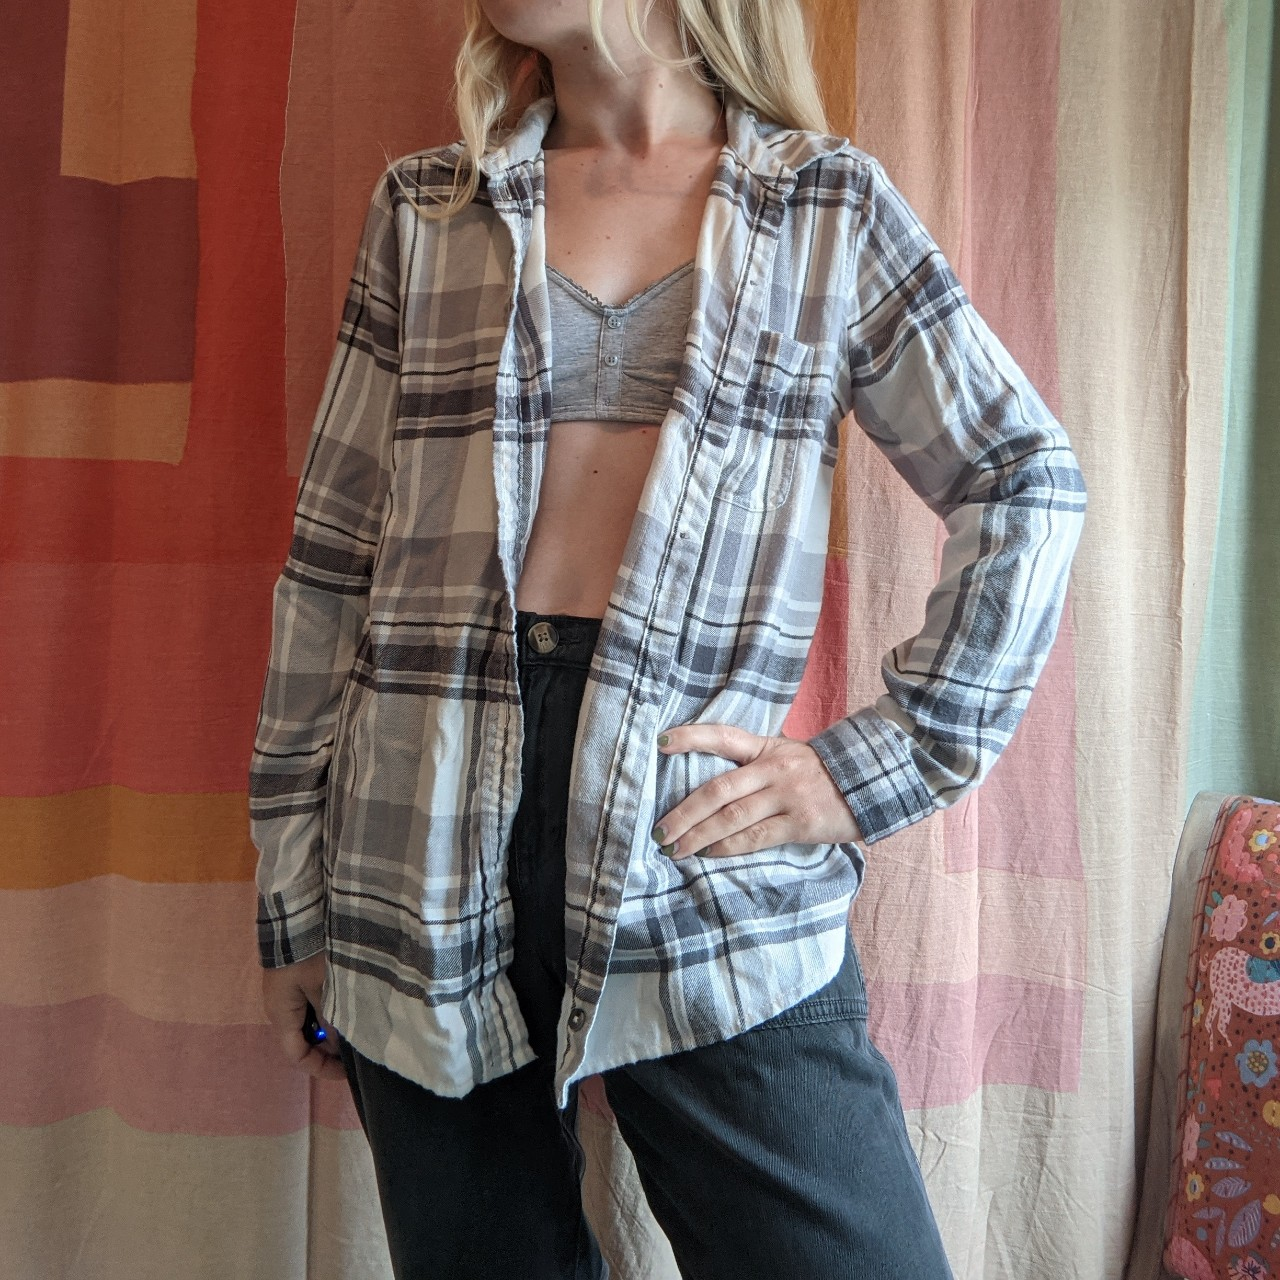 Product Image 1 - 'Ahh-mazingly soft' flannel from American